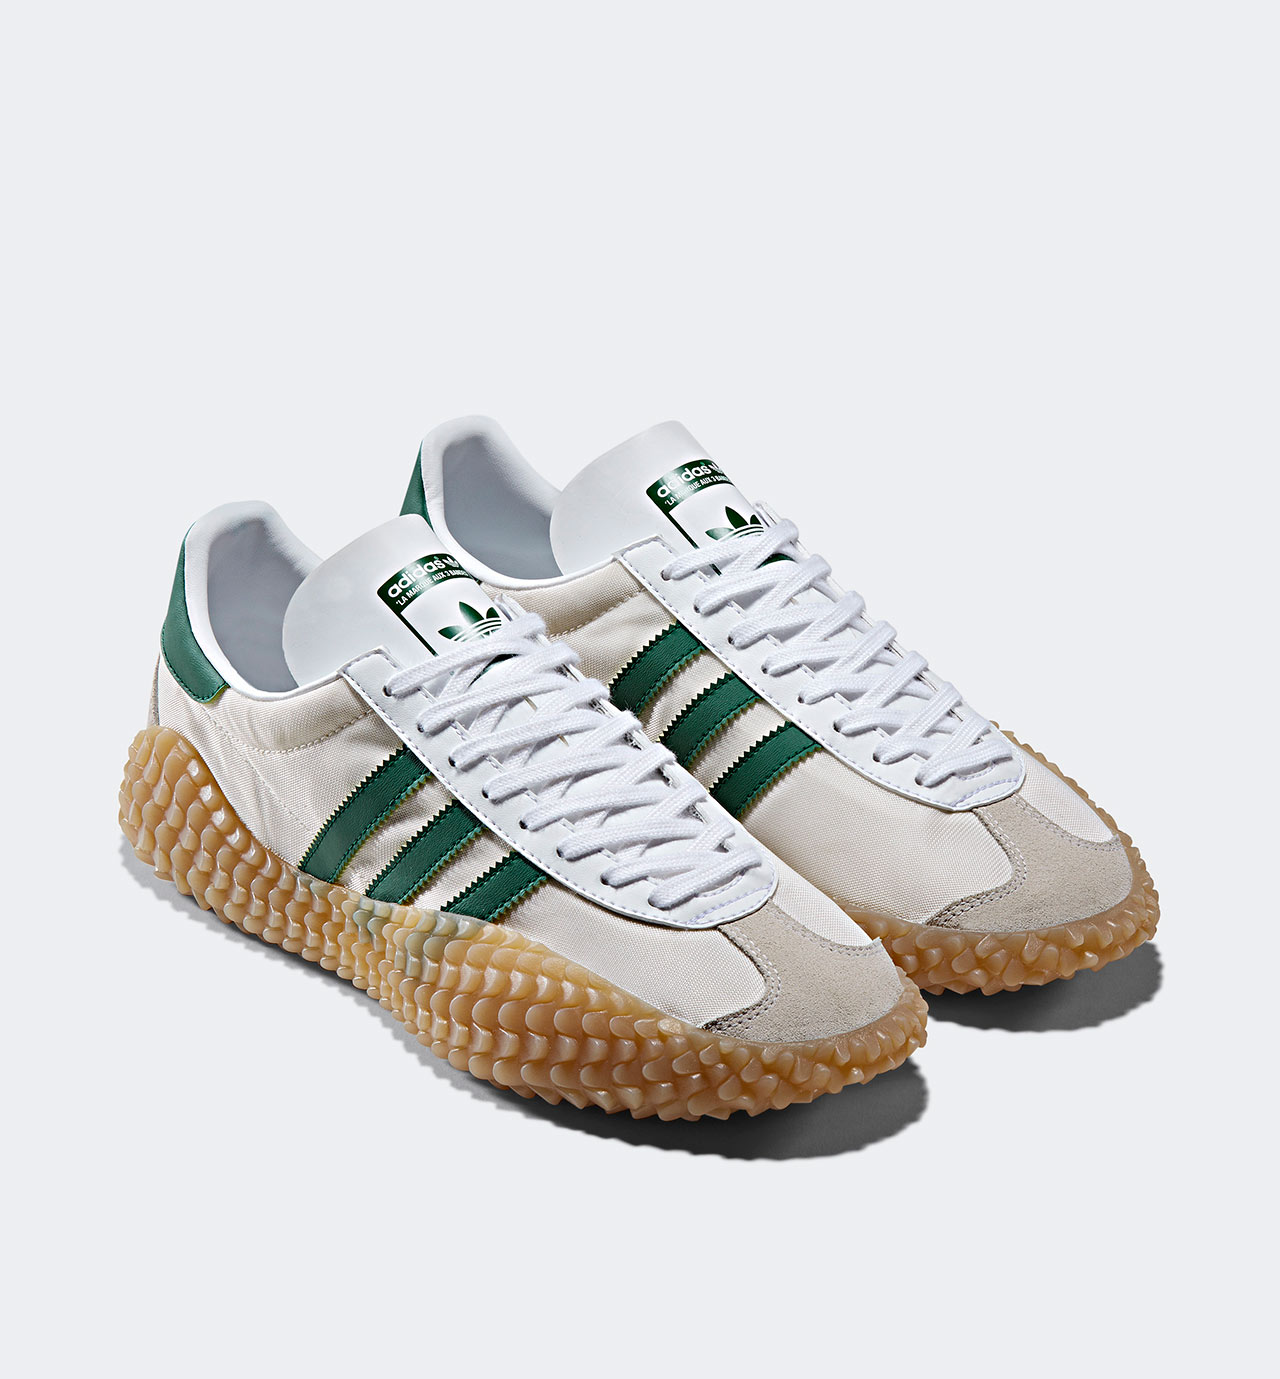 a60bbfa44c The Adidas  Never Made  Pack Imbues the Past with the Present